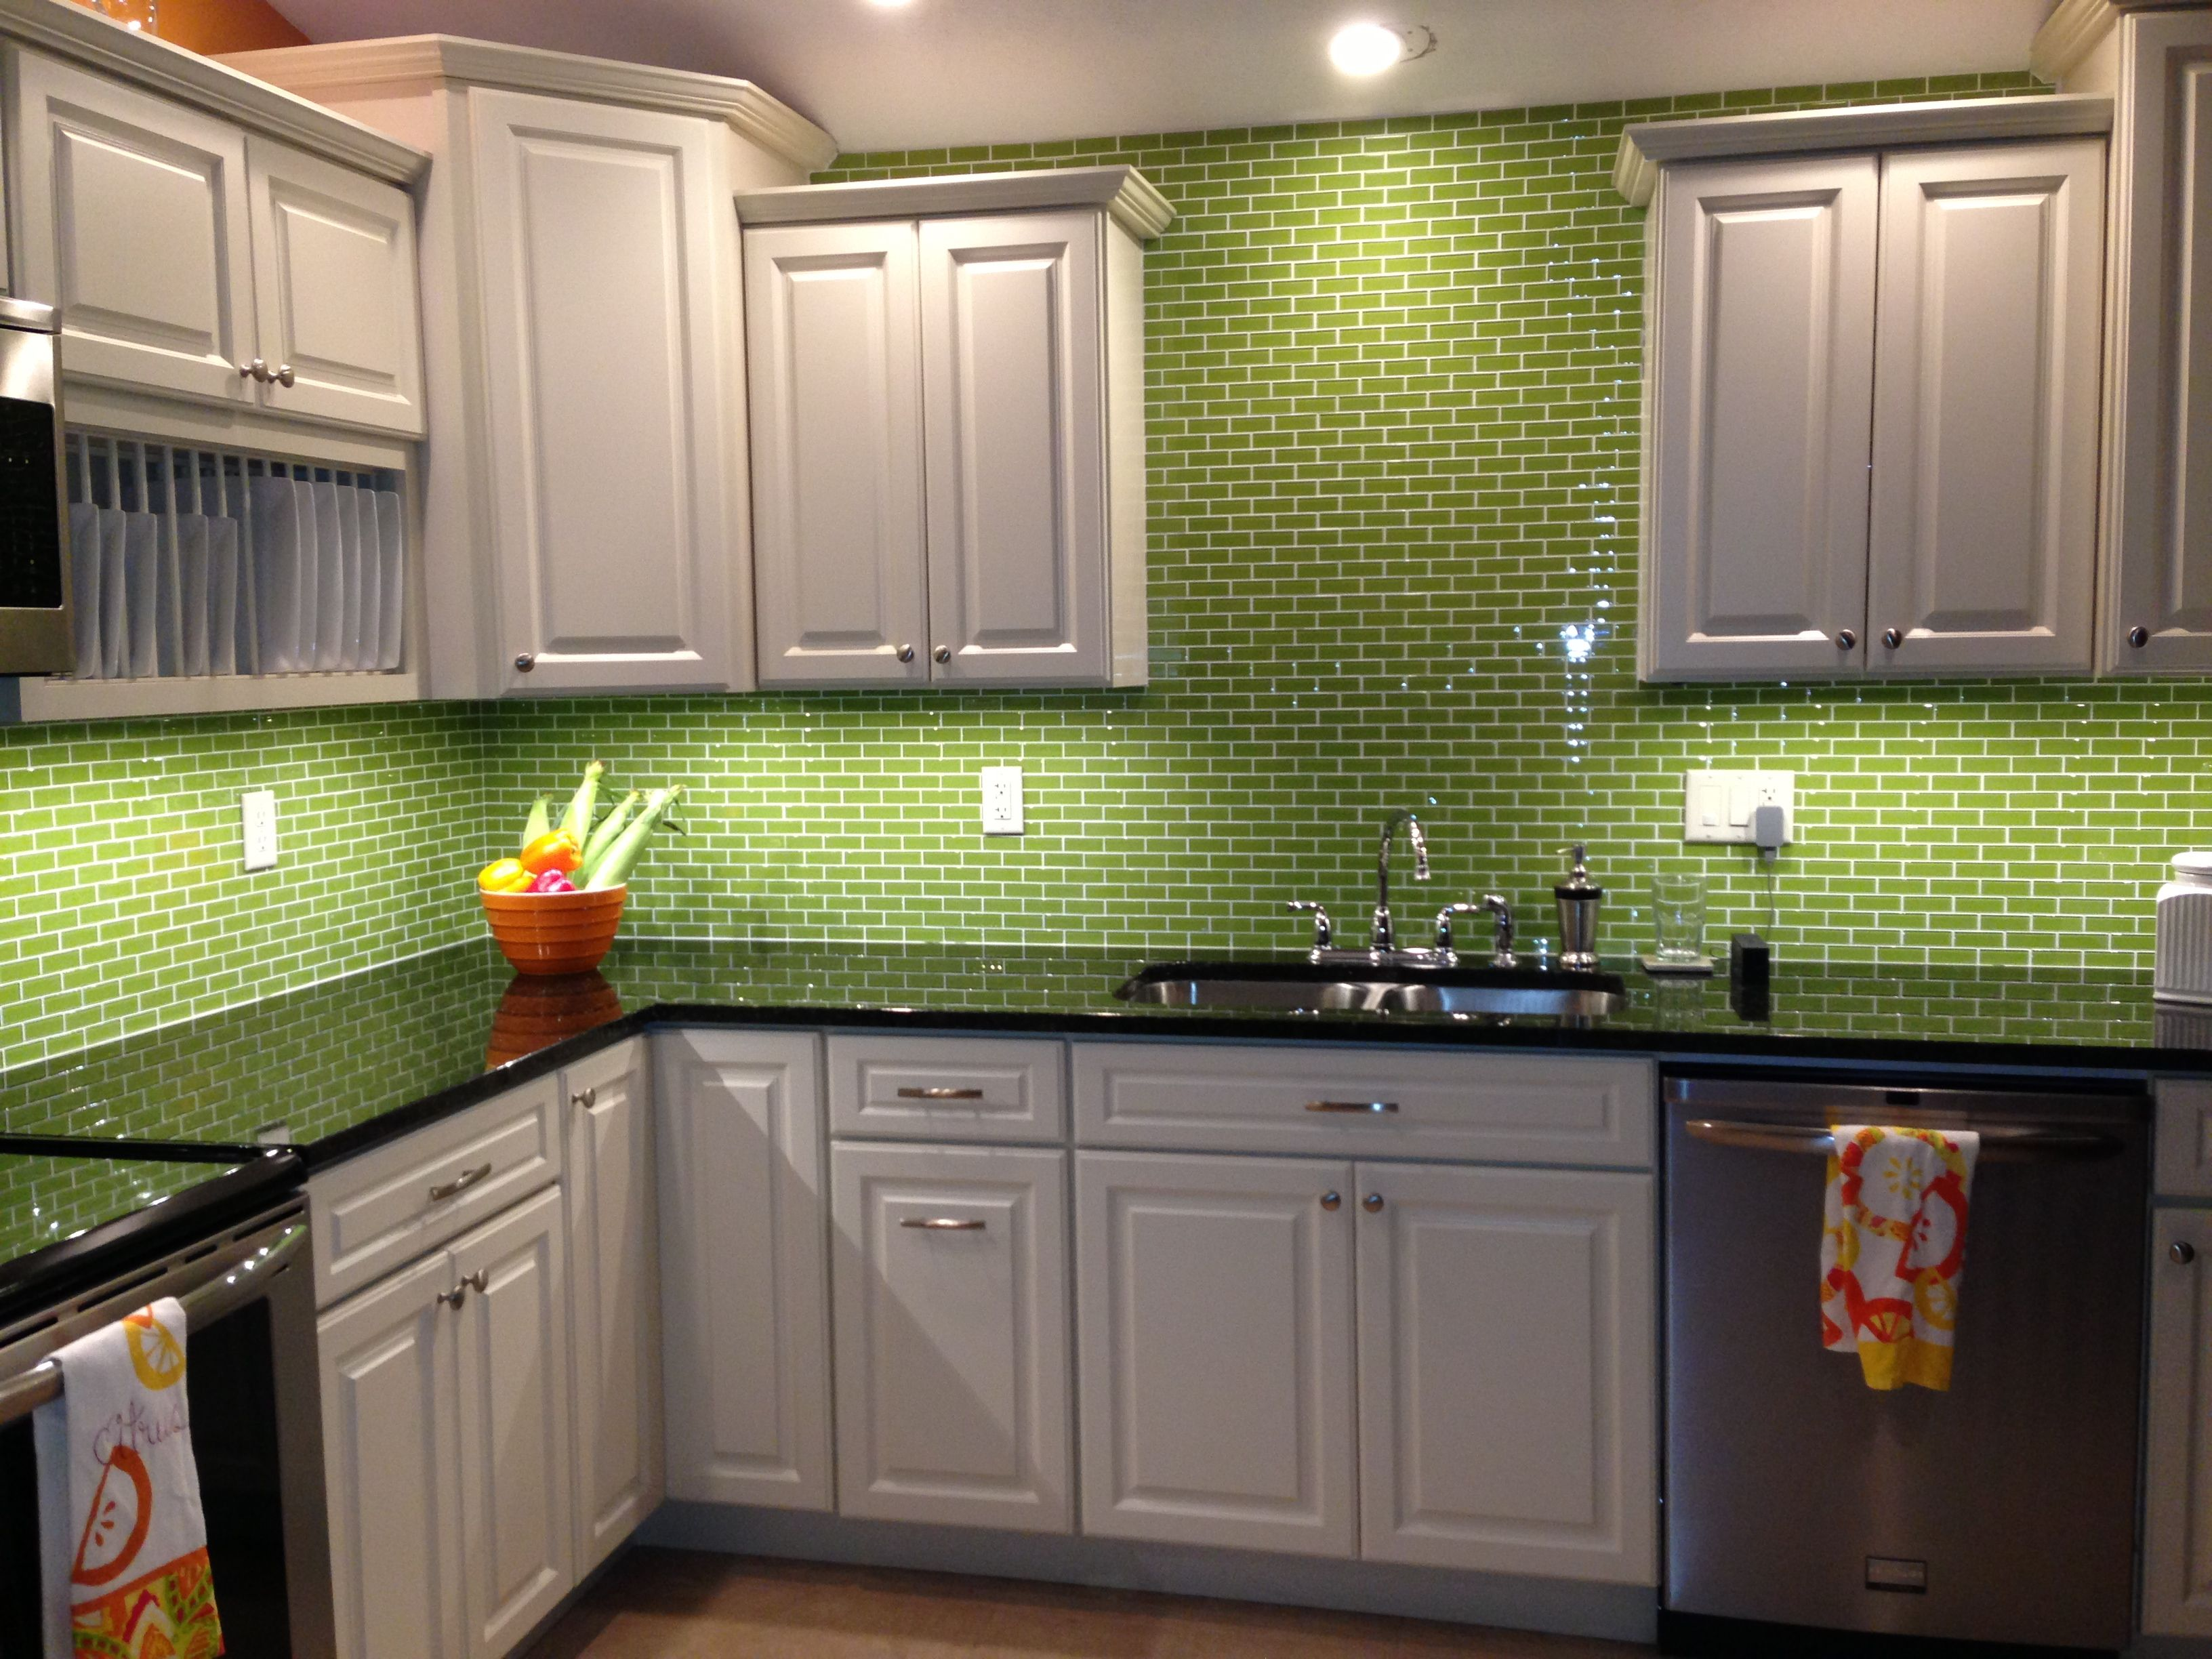 Subway Tile Kitchen Ideas lime green glass subway tile backsplash kitchen | kitchen ideas